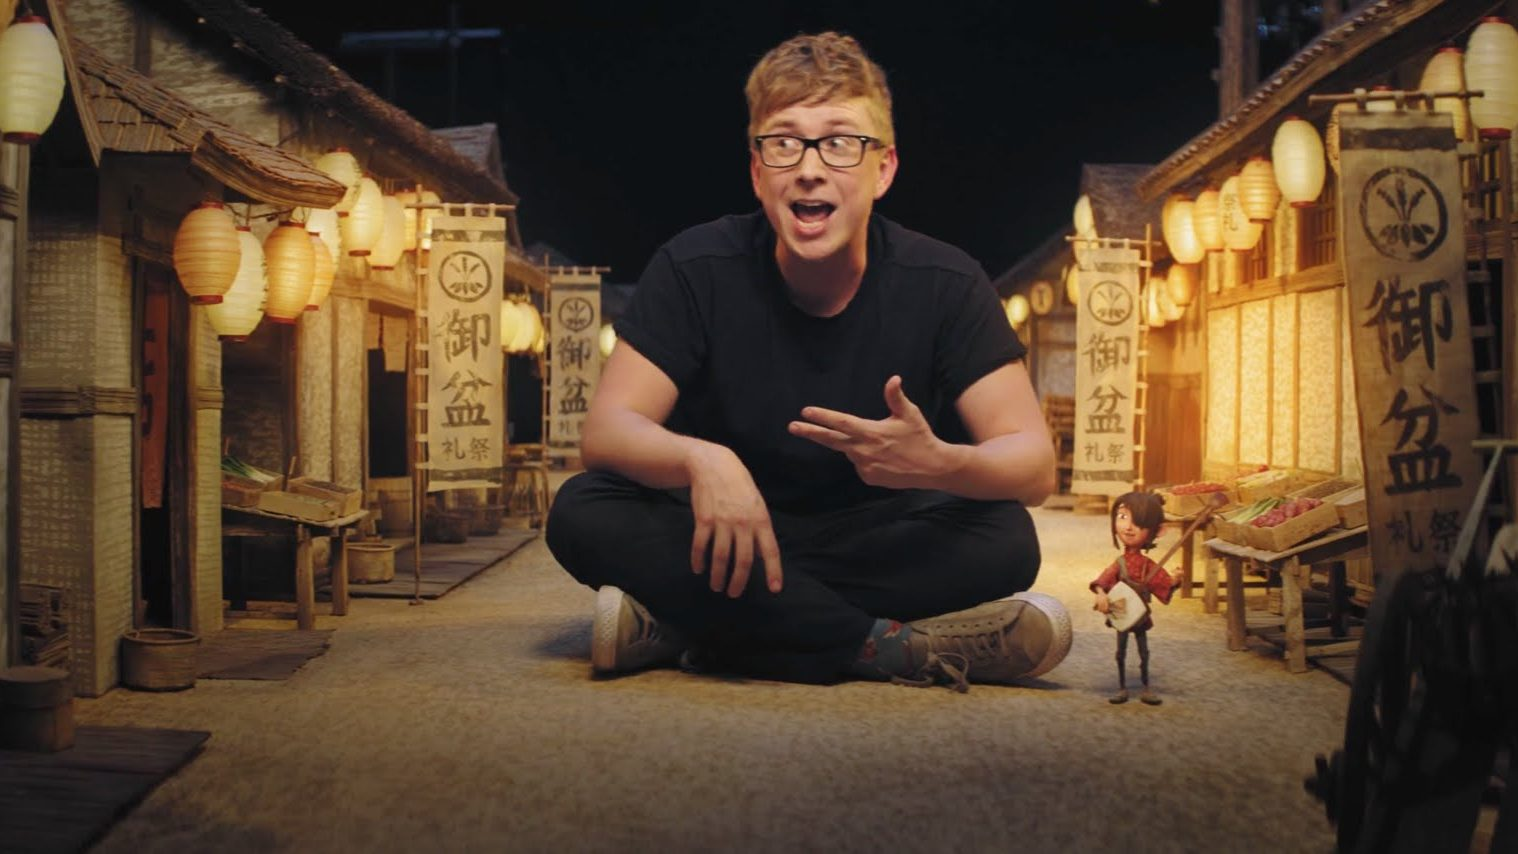 KUBO AND THE TWO STRINGS – Tyler Oakley Visits Laika